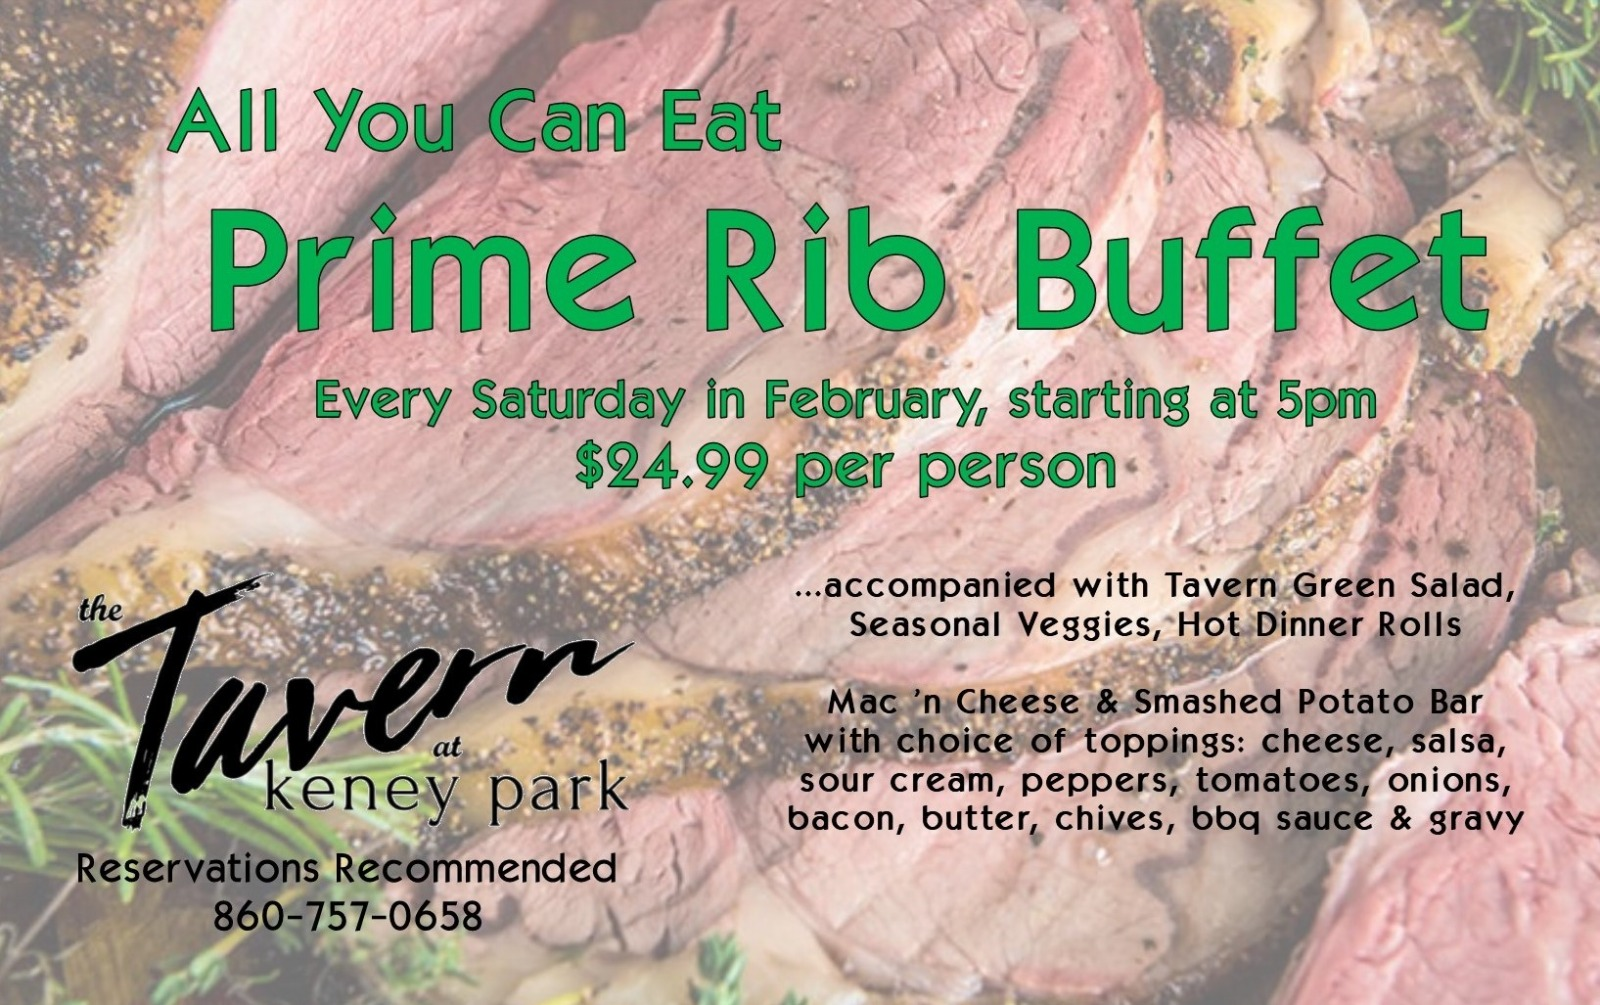 All you can eat Prime Rib Buffet